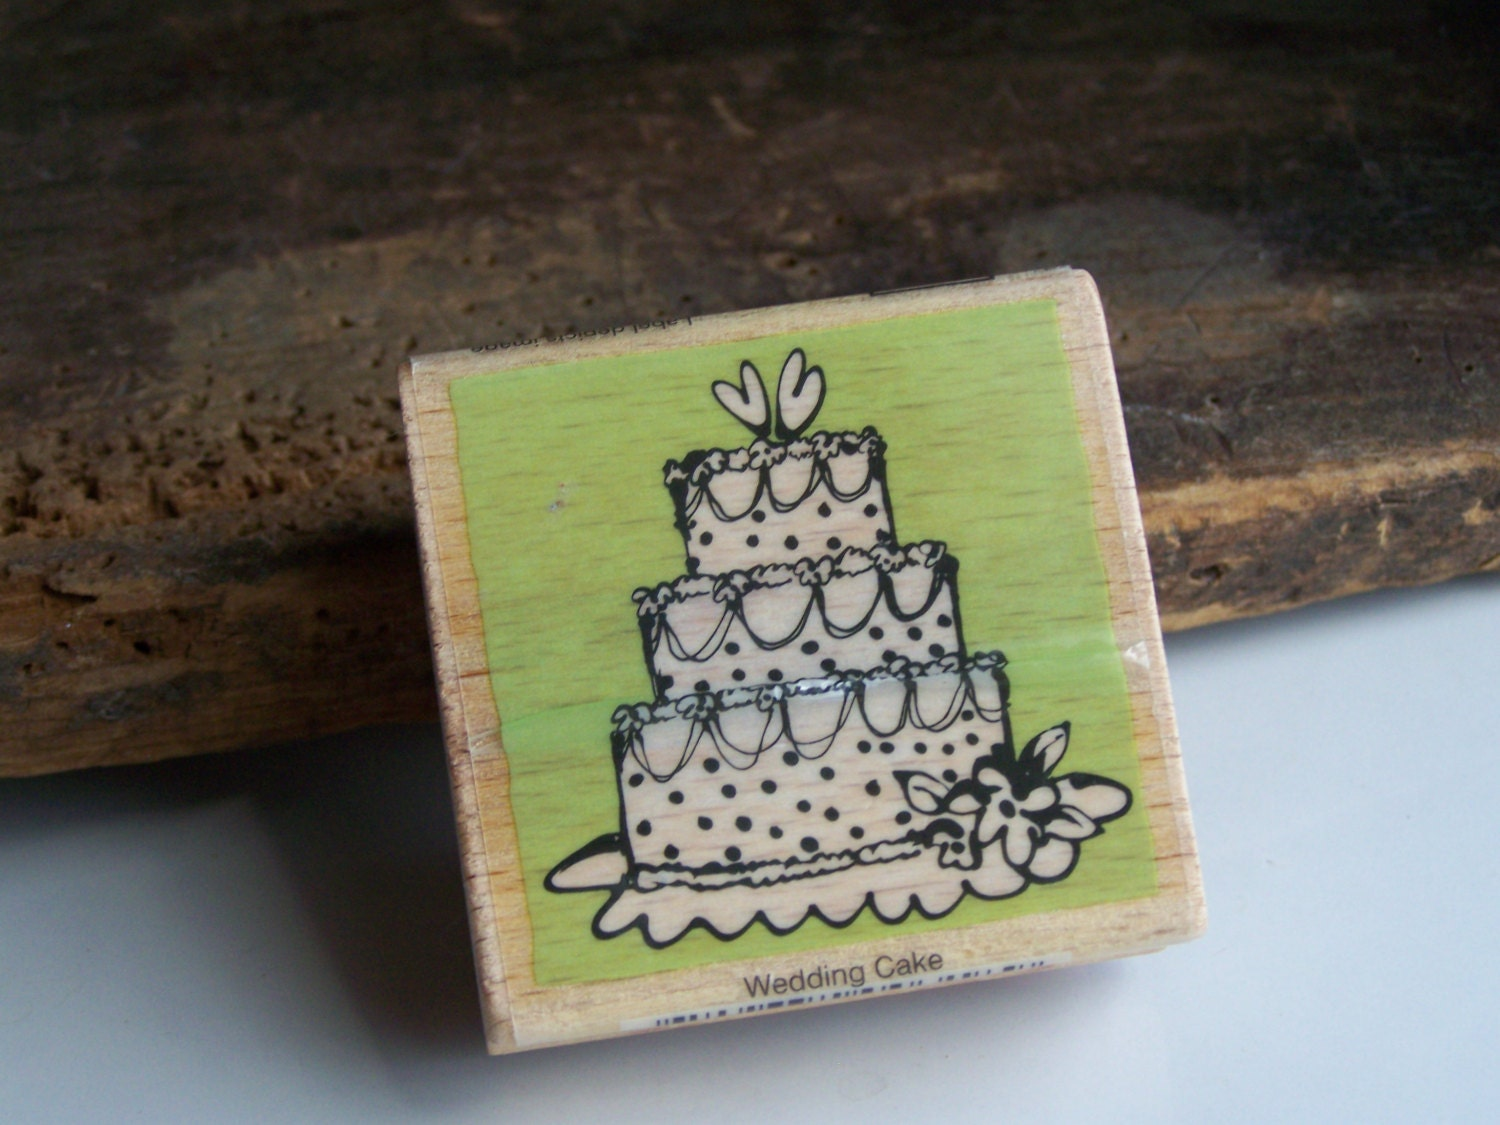 Rubber Stamp Wedding Cake Wedding Cake Stamp By Alysbeads On Etsy